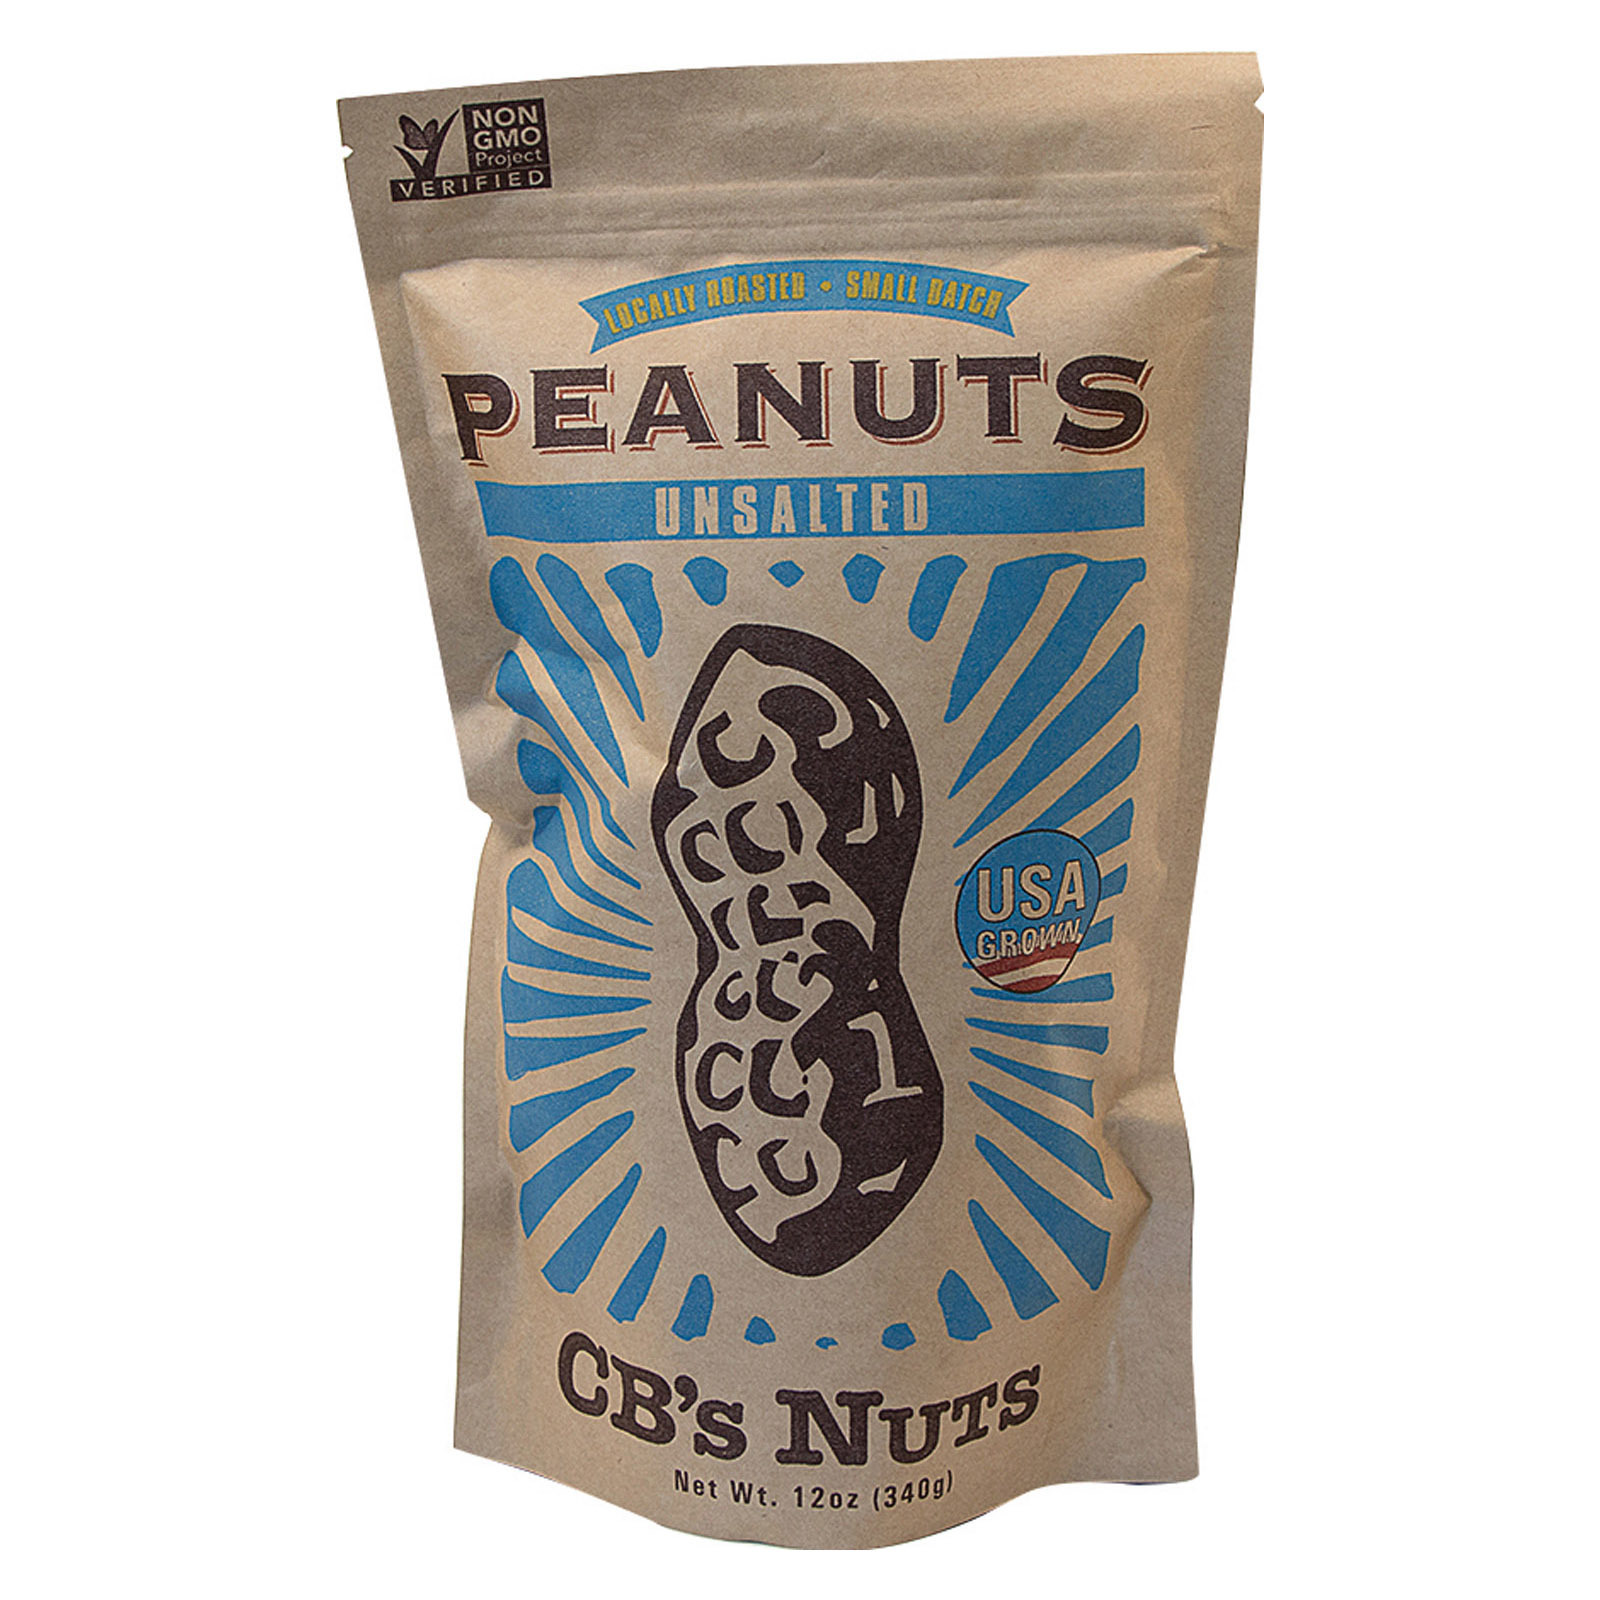 Cb's Nuts Peanuts - Unsalted - Jumbo - in Shell - Case of 12 - 12 oz